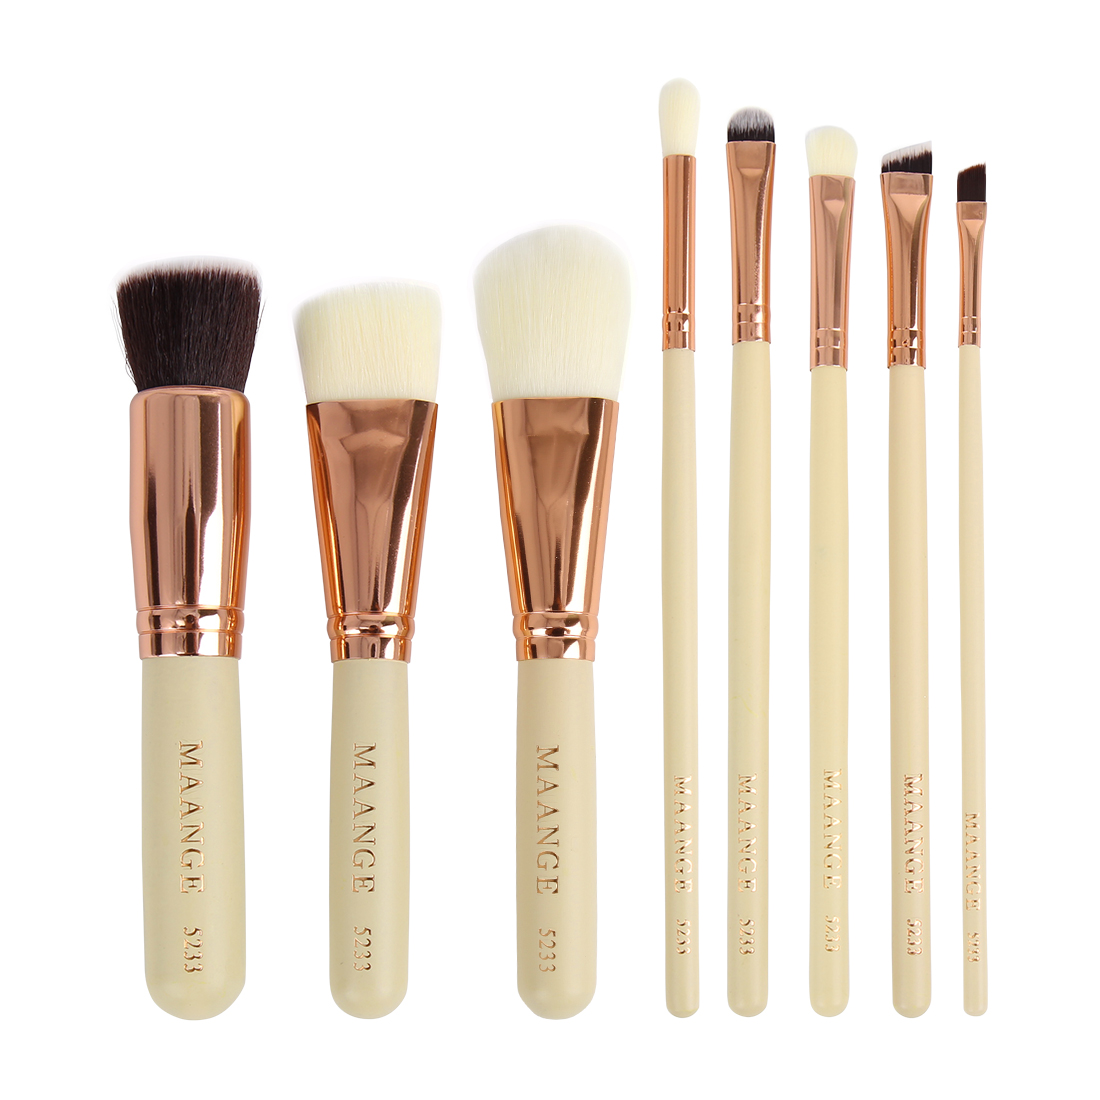 8pcs Pro Makeup Brush Set Powder Foundation Eyeshadow Eyebrow Lip Cosmetic Tool